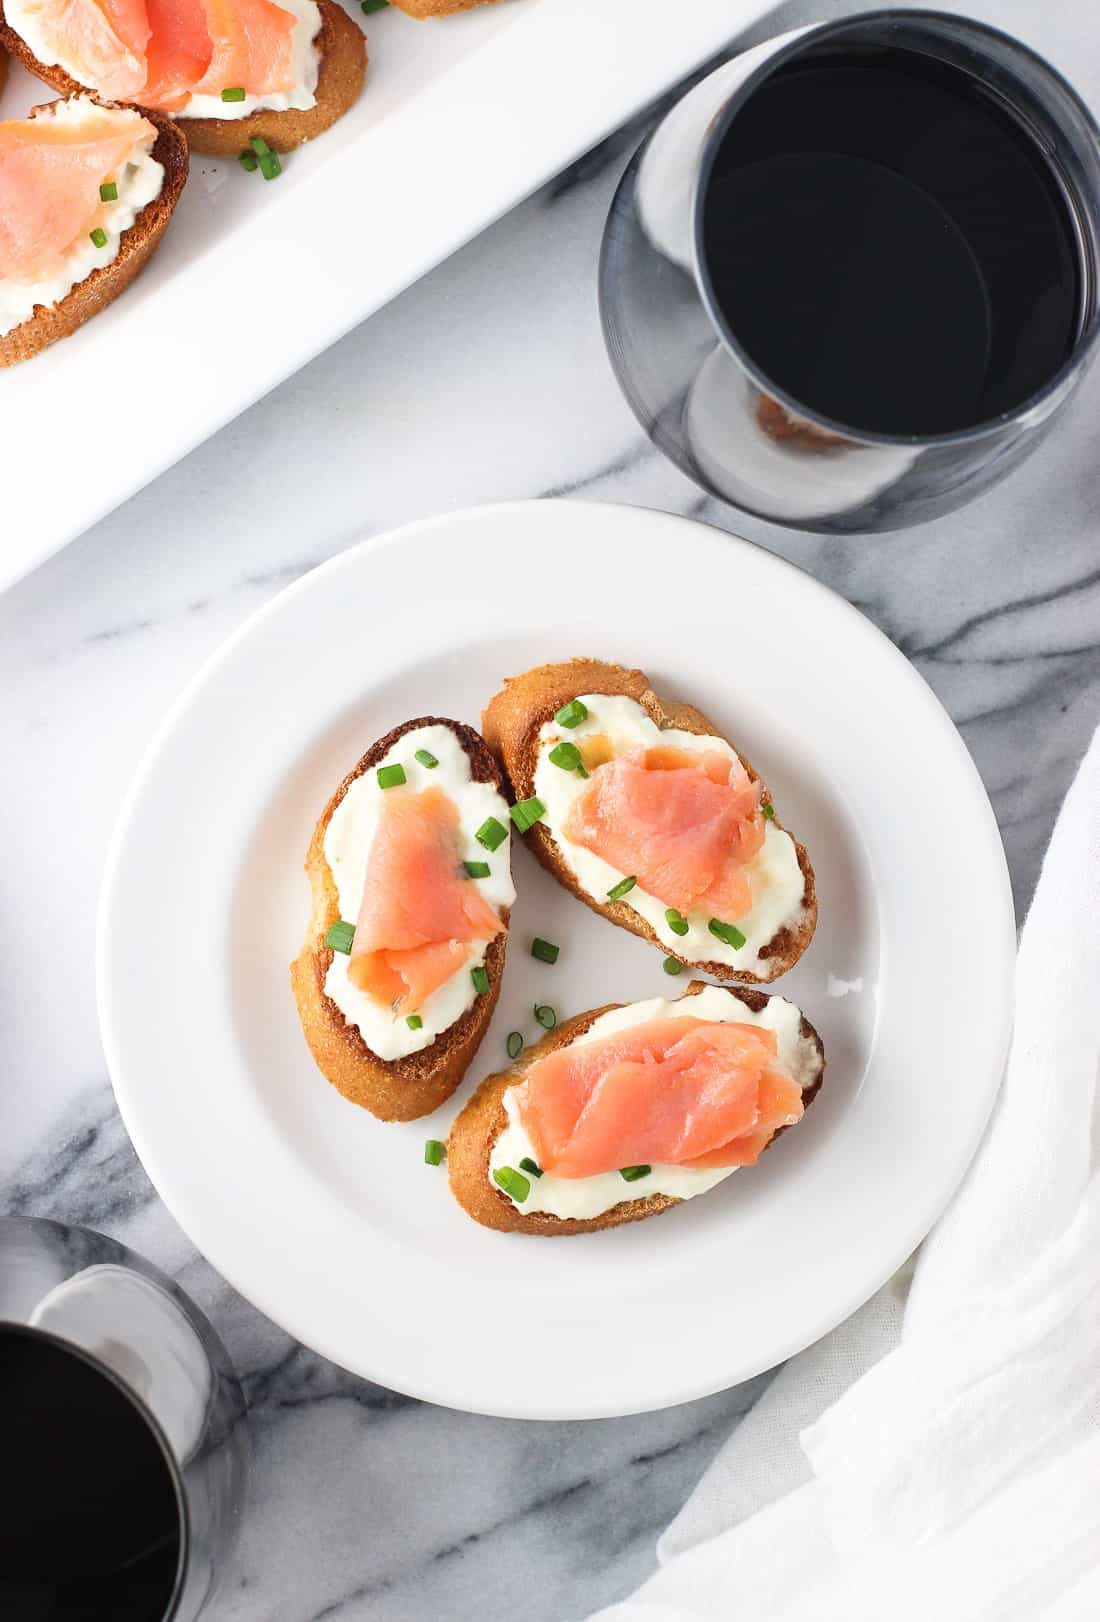 Three crostini on a plate next to a glass of wine and the crostini tray.